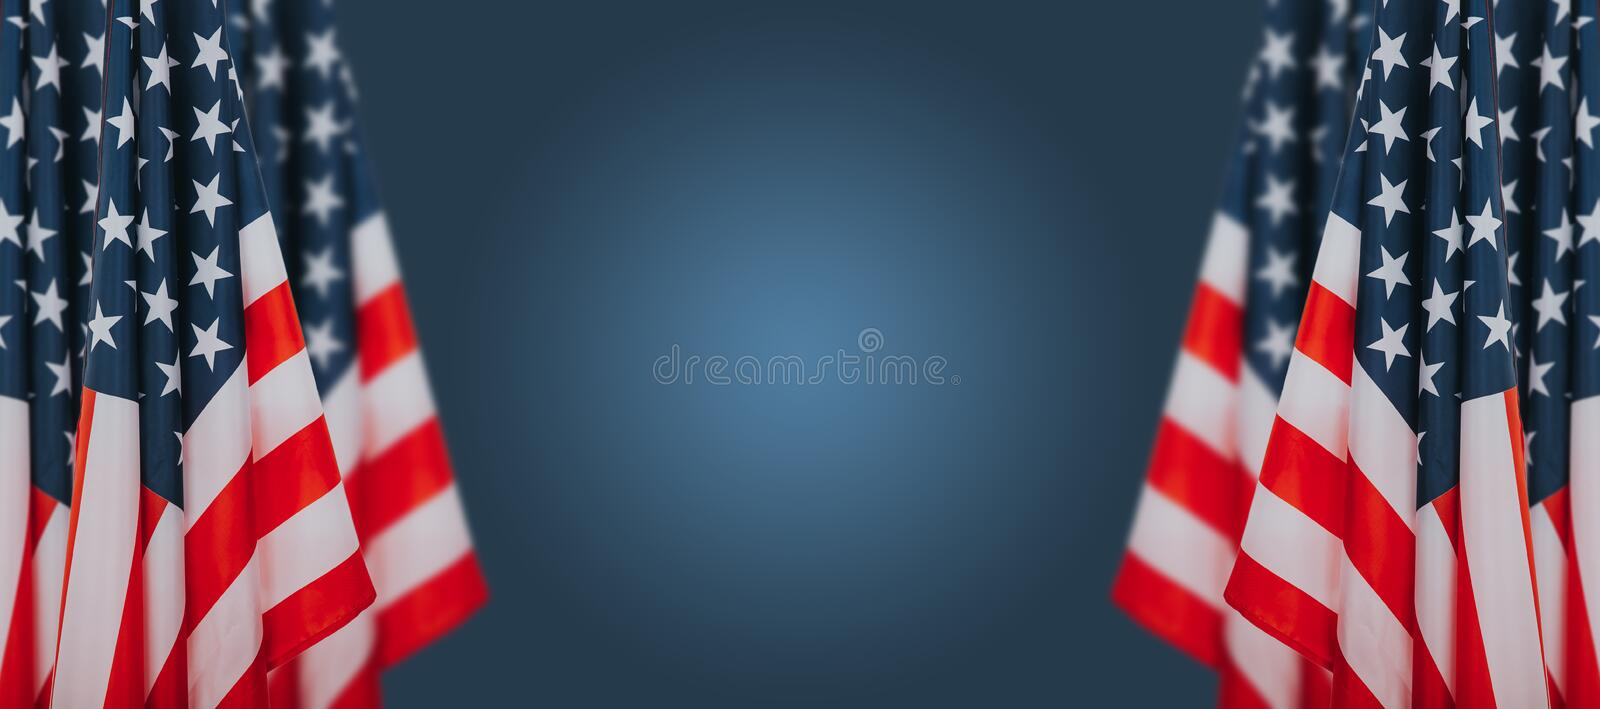 American flags on blue background. Perfect image for Memorial day, Independence Day and Veterans Day.  American patriotism concept stock image